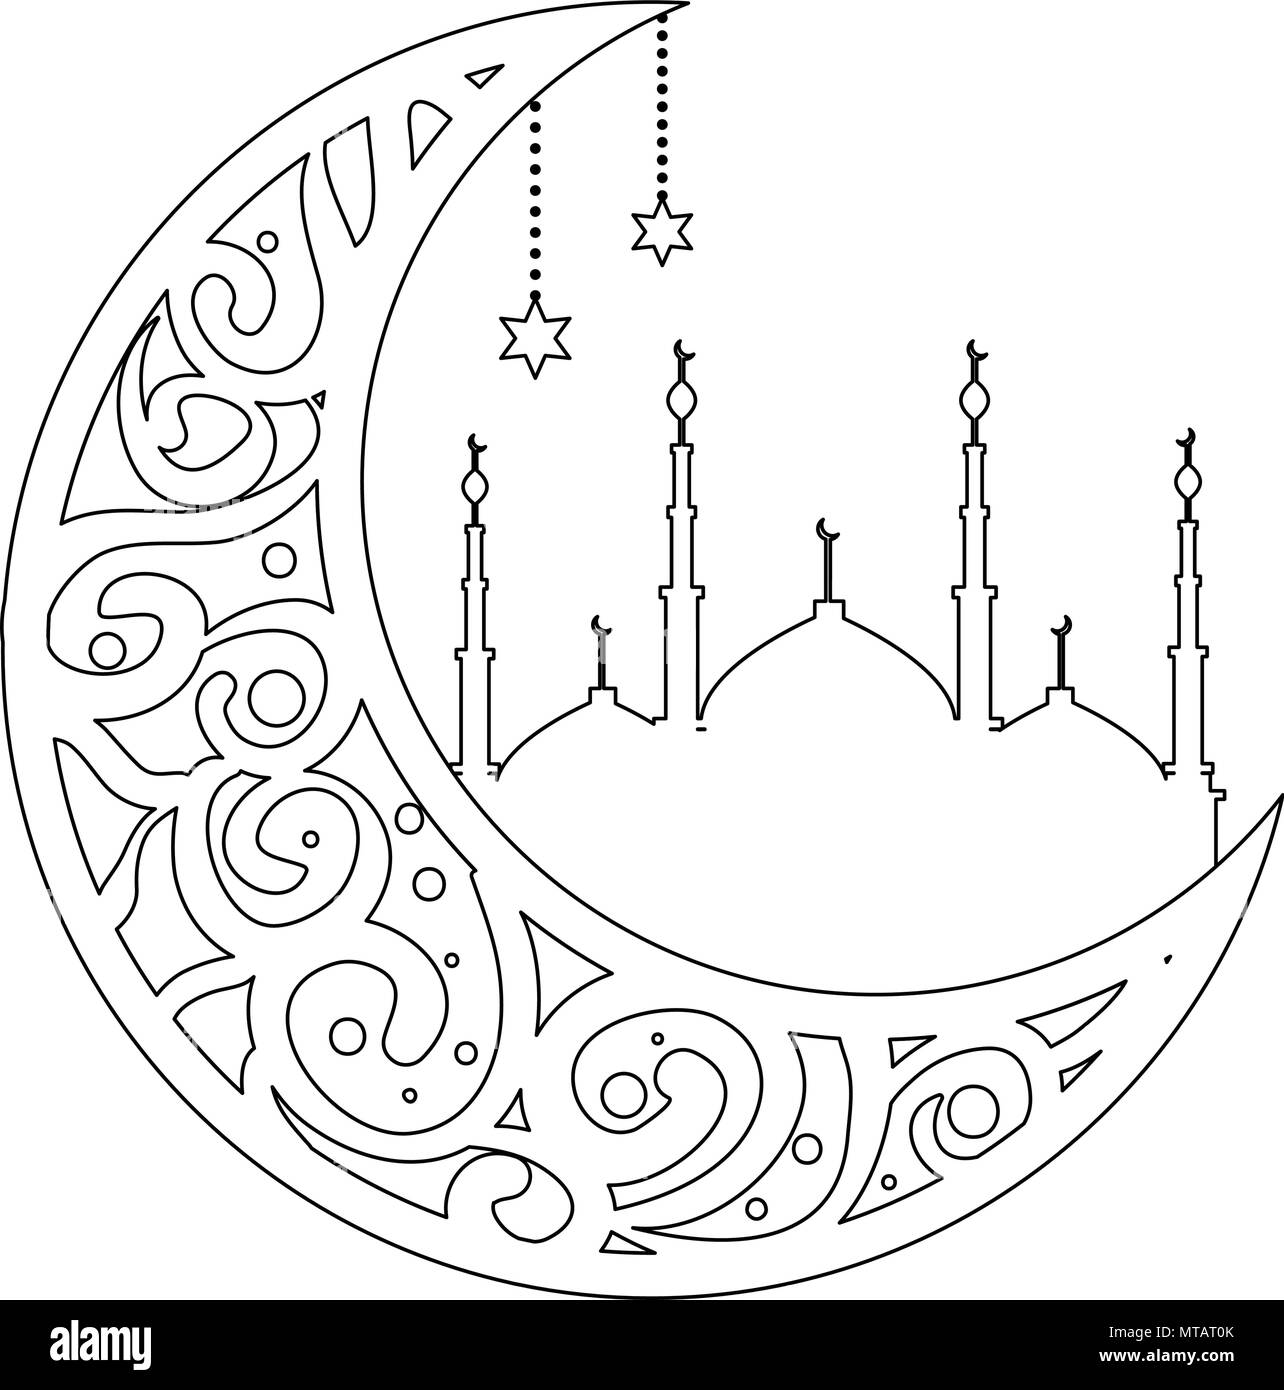 Ramadan Moon Black And White Stock Photos Amp Images